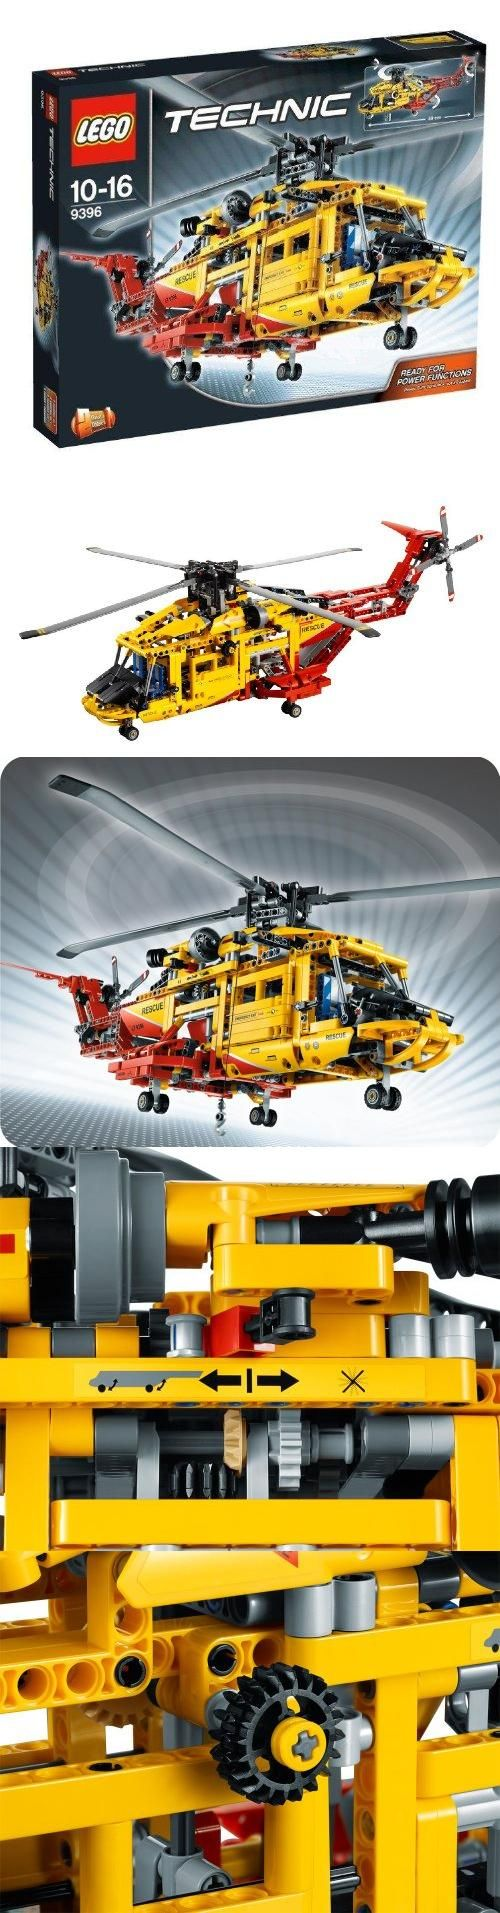 LEGO Technic Helicopter 9396, LEGO Technic Helicopter 9396 - wish I owned it!!!